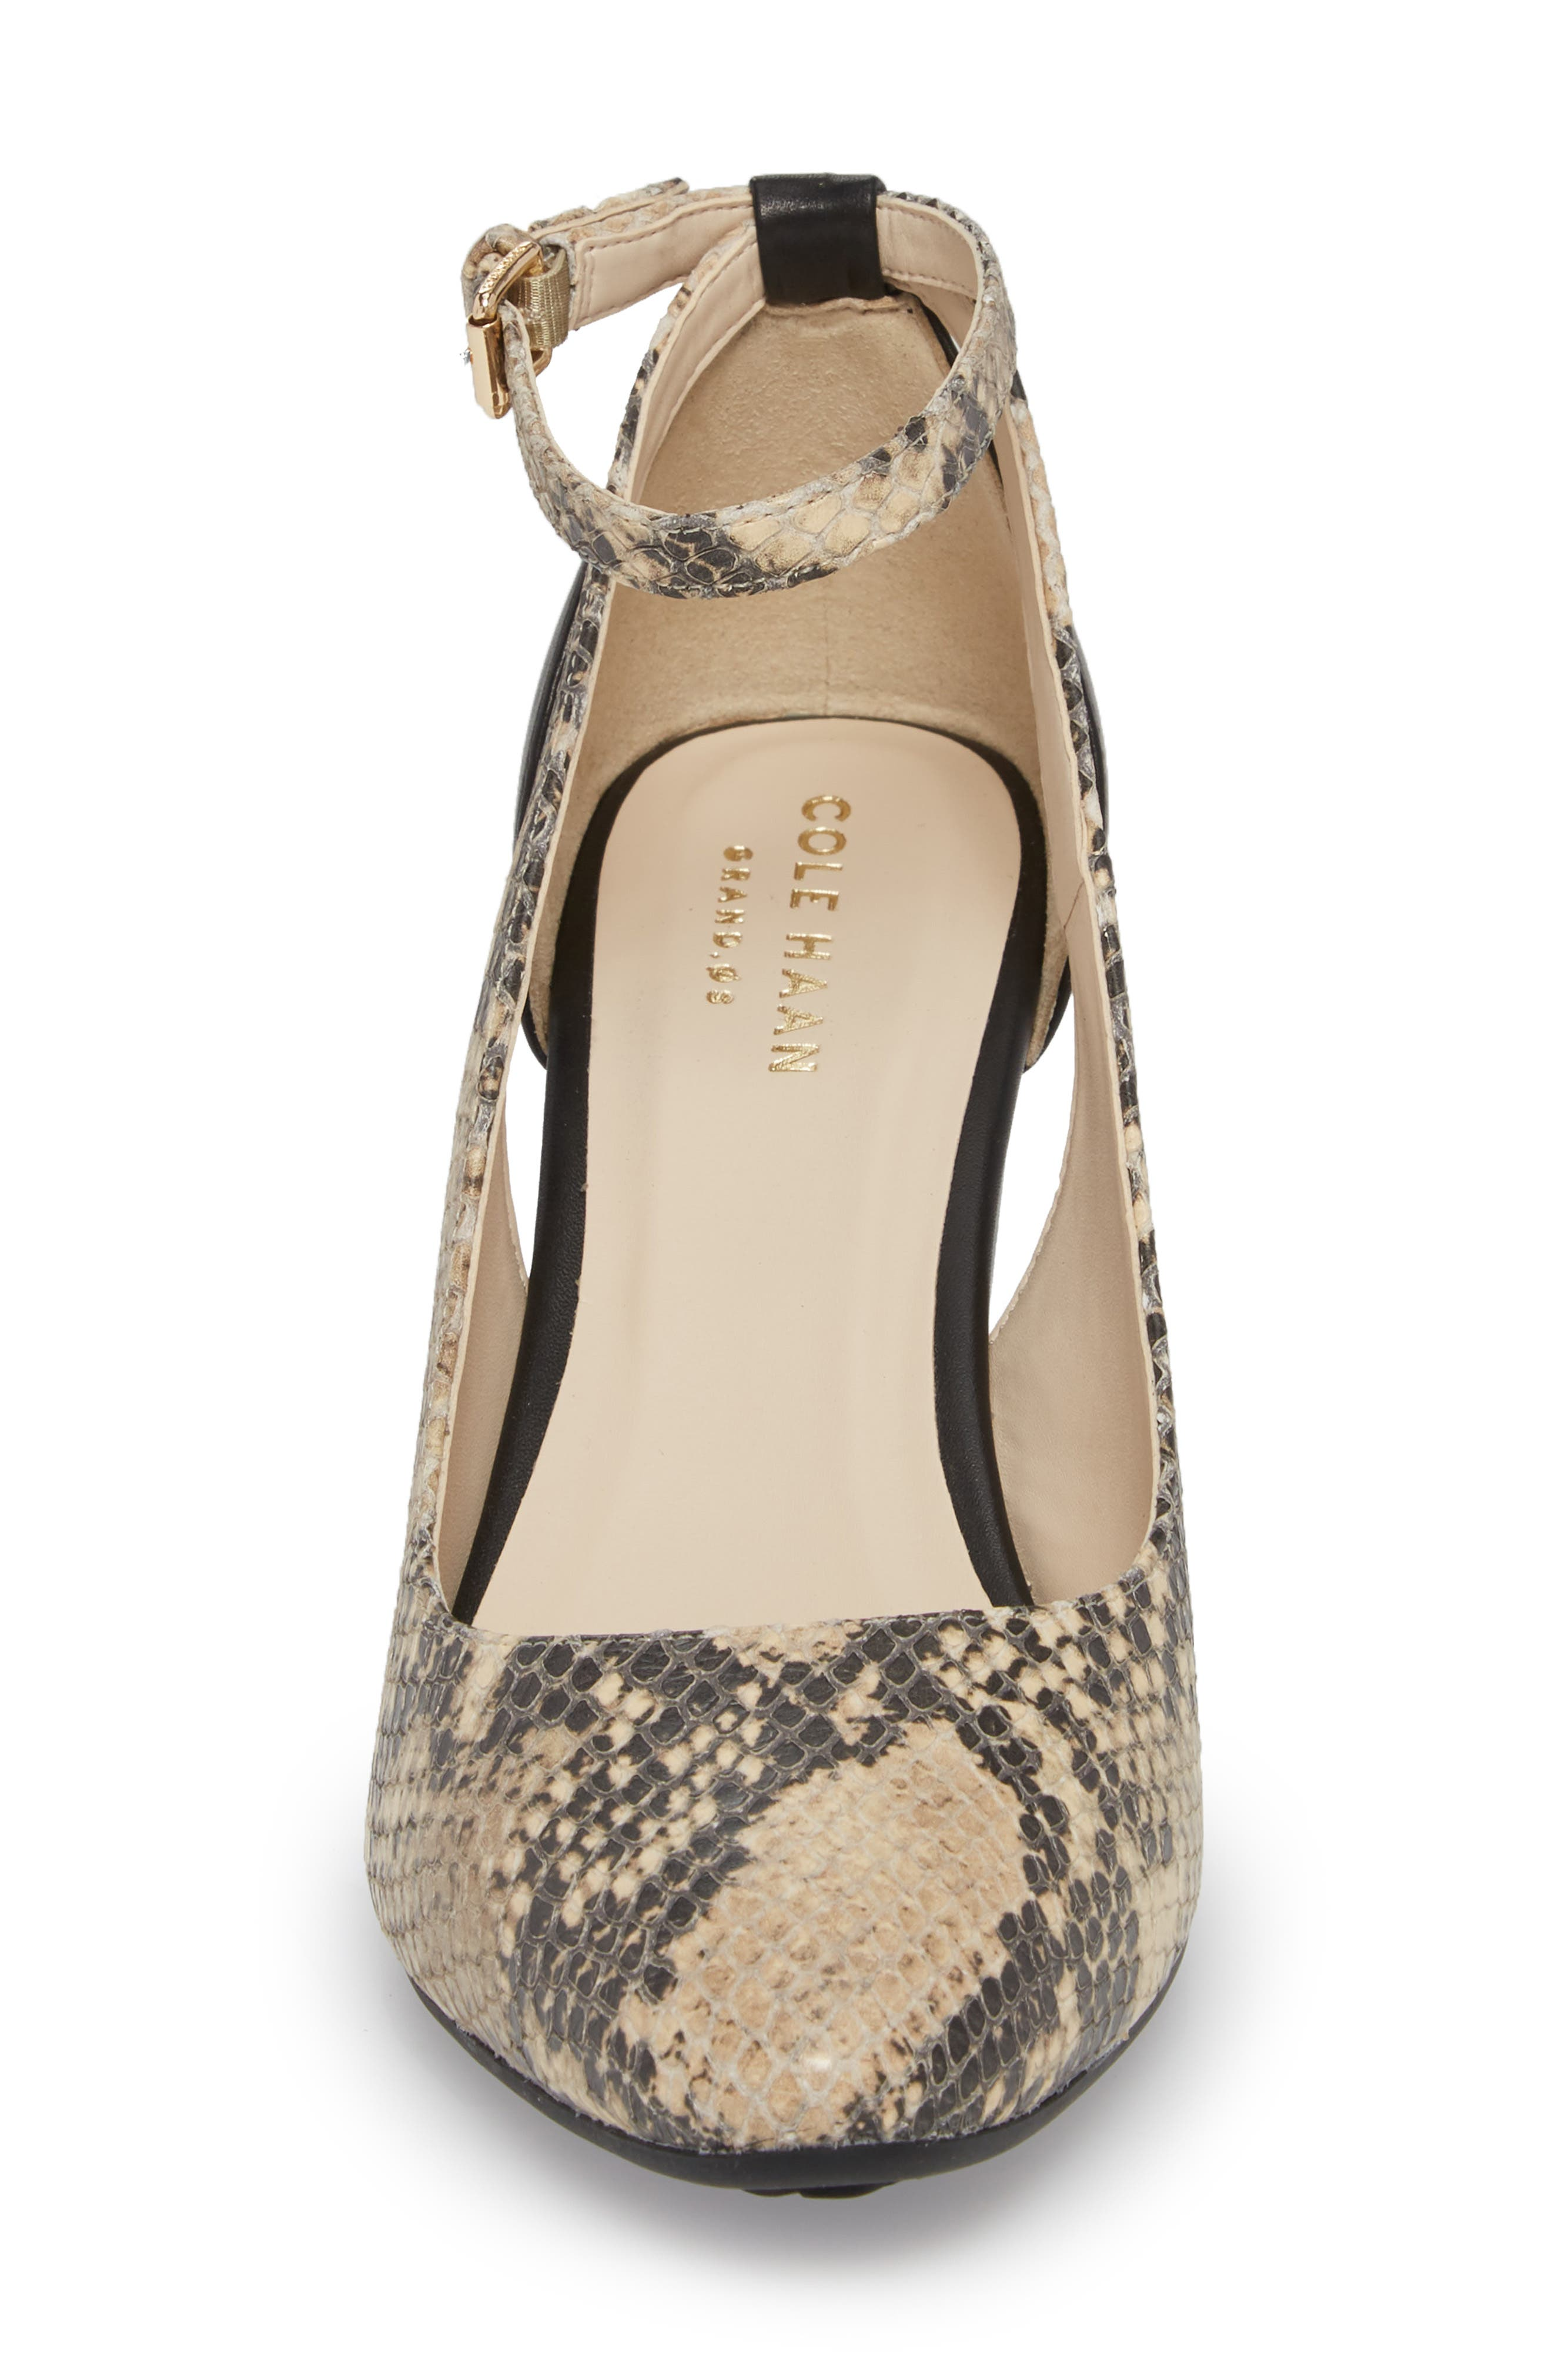 Lacey Cutout Wedge Pump,                             Alternate thumbnail 4, color,                             SNAKE PRINT LEATHER